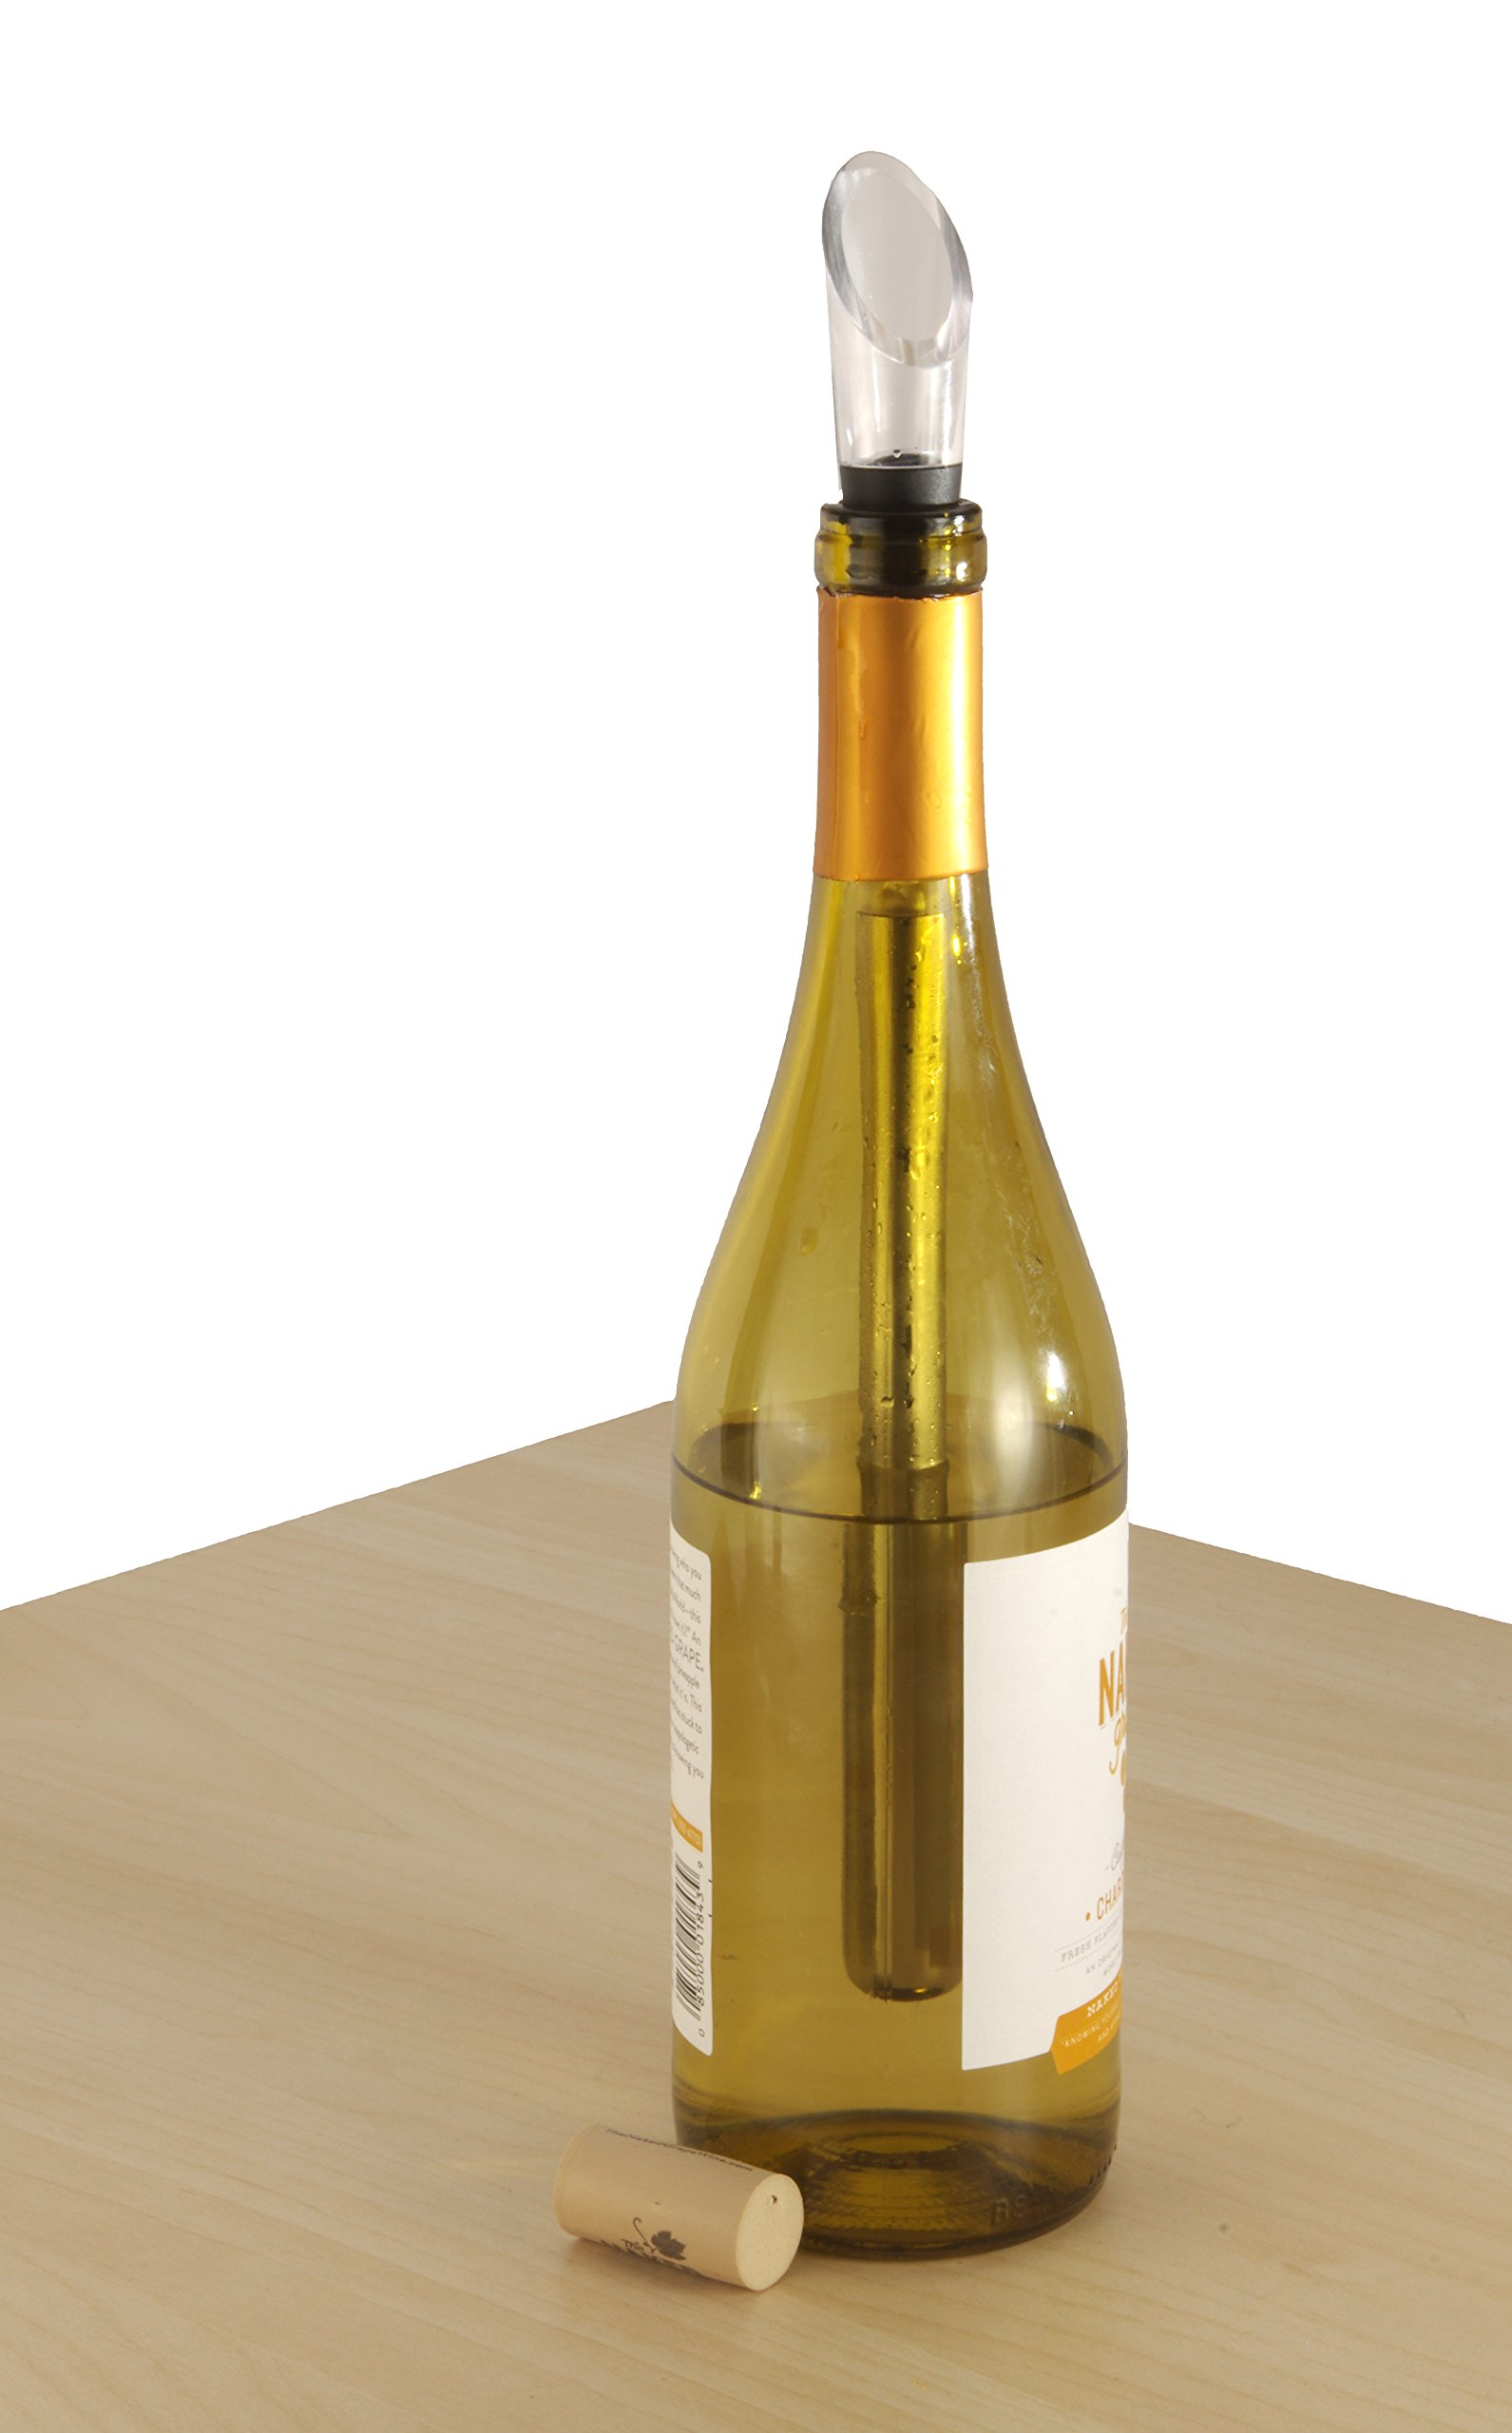 Wine Chiller: BlizeTec 3-in-1 Stainless Steel Wine Bottle Cooler Stick with Aerator and Pourer by BlizeTec (Image #7)